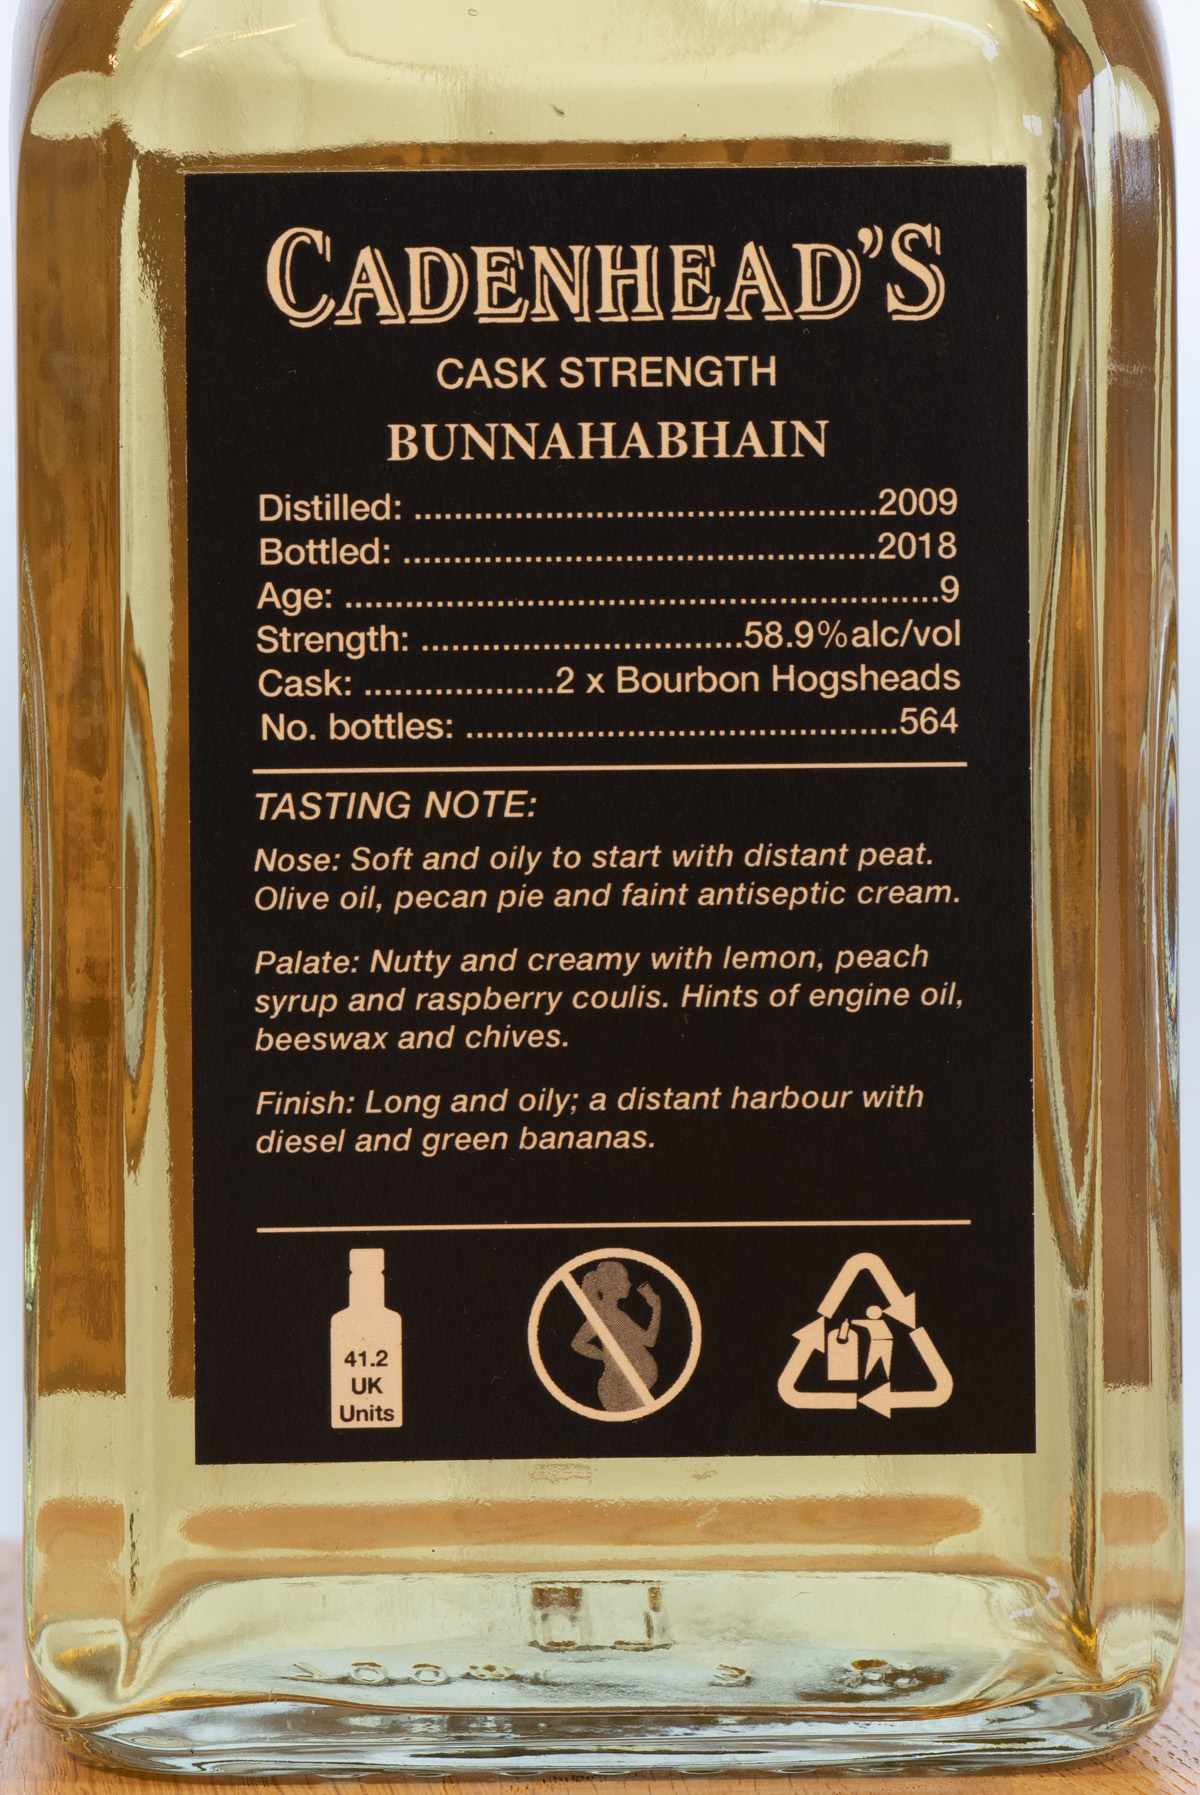 Billede: PHC_3940 - Cadenhead Small Batch Bunnahabhain 9y - bottle back.jpg